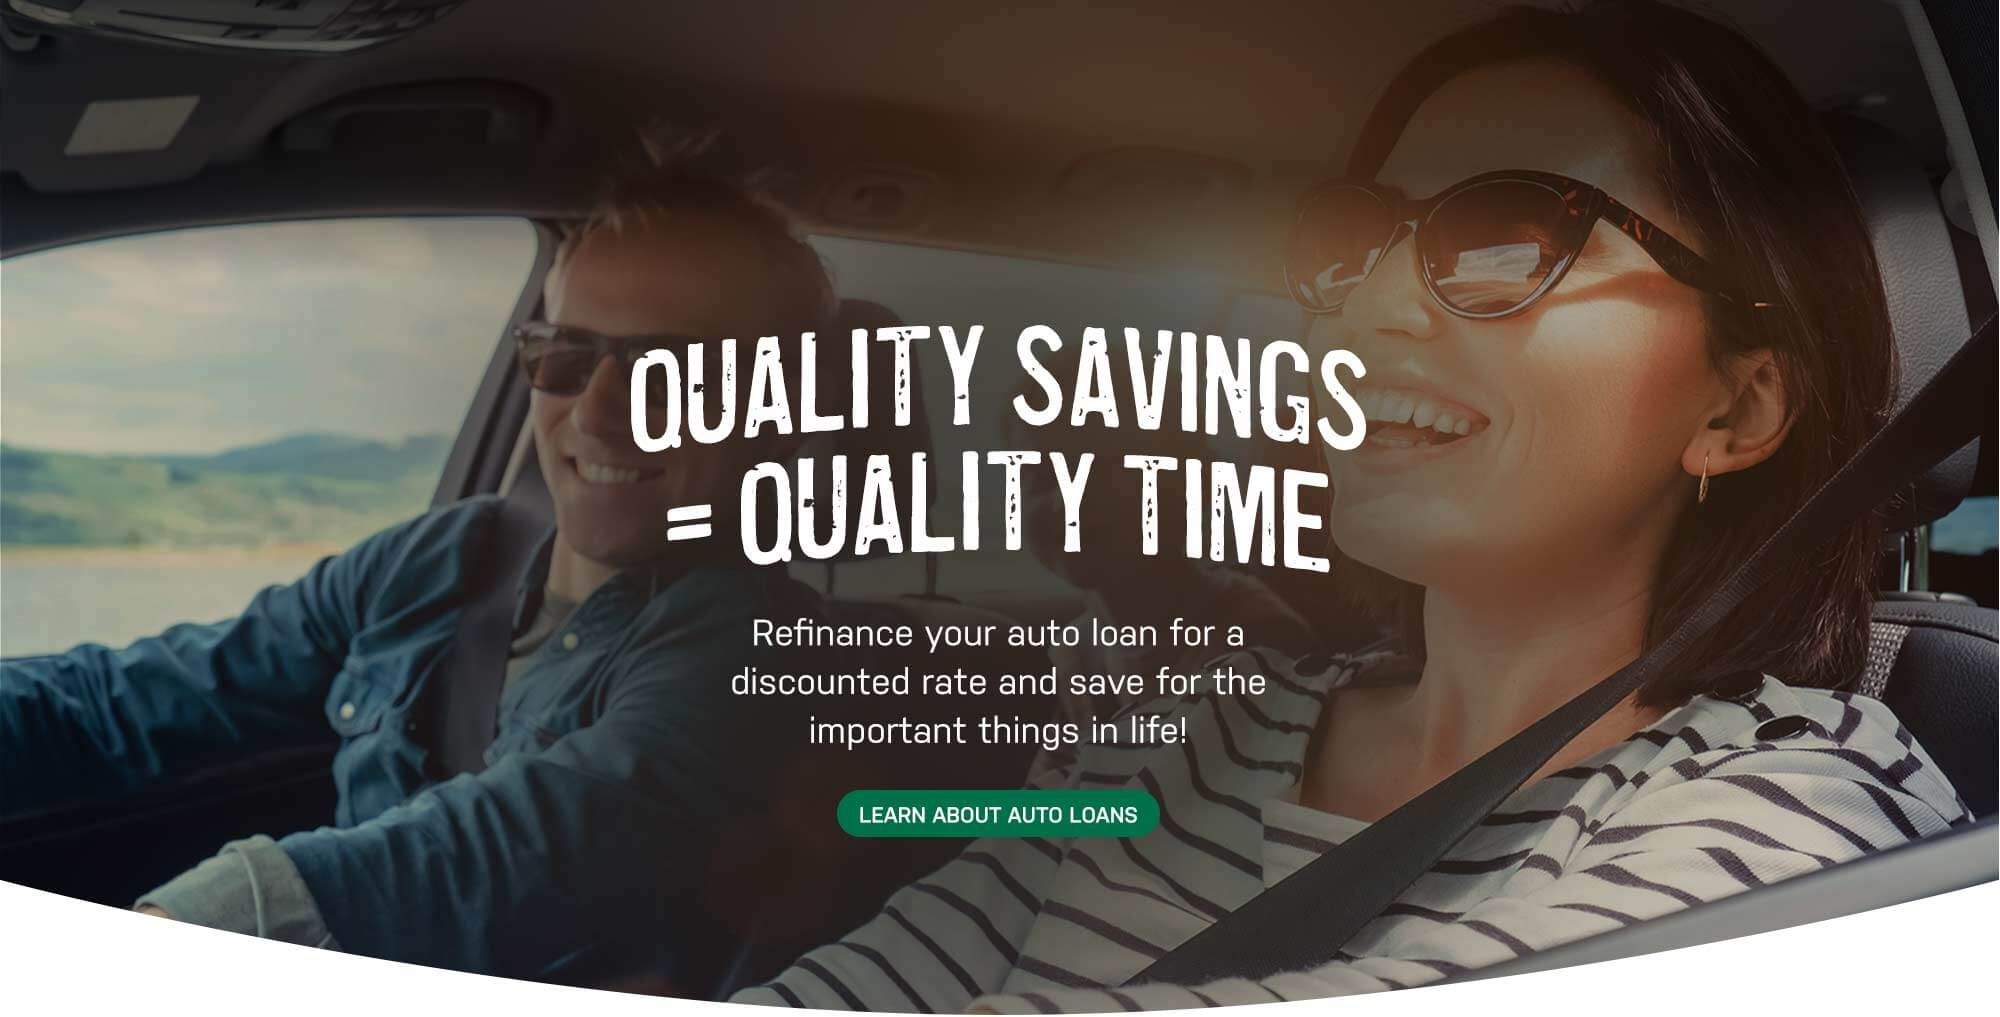 Refinance your auto loan for a discounted rate and save for the important things in life! Click here for auto loan details.